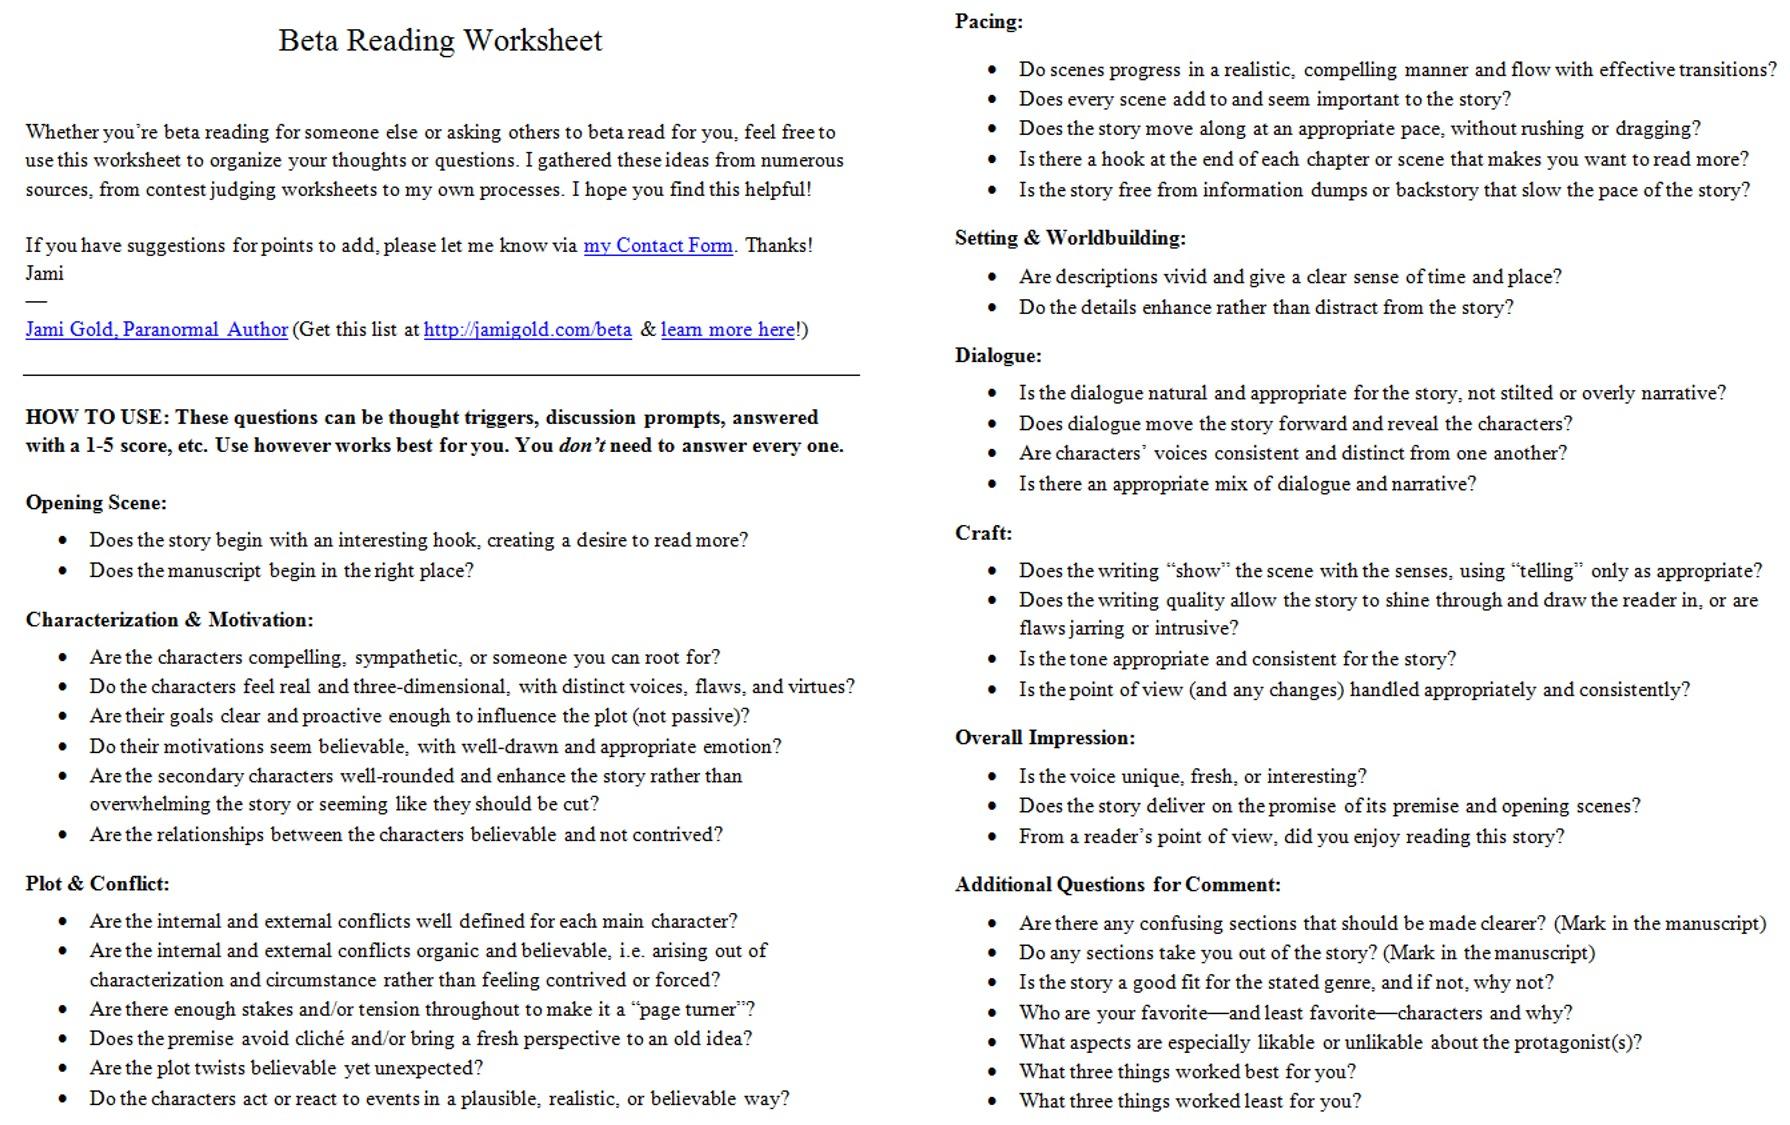 Aldiablosus  Marvelous Worksheets For Writers  Jami Gold Paranormal Author With Outstanding Screen Shot Of The Twopage Beta Reading Worksheet With Breathtaking Worksheet Activities For Kids Also Rounding Tens Hundreds Thousands Worksheets In Addition Grade  Temperature Worksheets And Alligator Greater Than Less Than Worksheet As Well As Water Worksheets For Kindergarten Additionally Jungle Book Worksheets From Jamigoldcom With Aldiablosus  Outstanding Worksheets For Writers  Jami Gold Paranormal Author With Breathtaking Screen Shot Of The Twopage Beta Reading Worksheet And Marvelous Worksheet Activities For Kids Also Rounding Tens Hundreds Thousands Worksheets In Addition Grade  Temperature Worksheets From Jamigoldcom